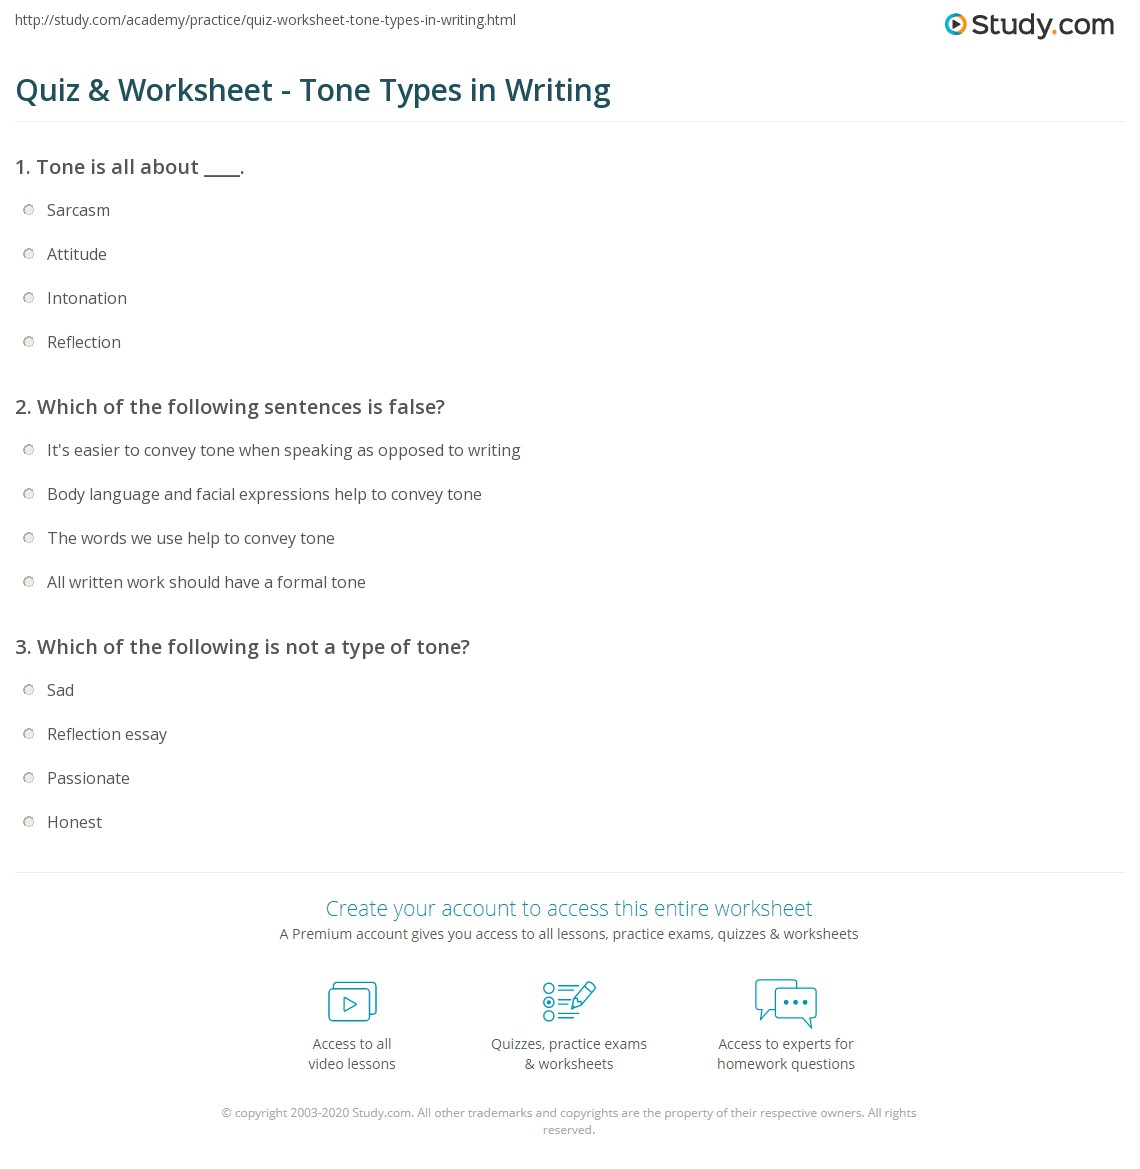 Different Styles of Writing & Which Is Right for You